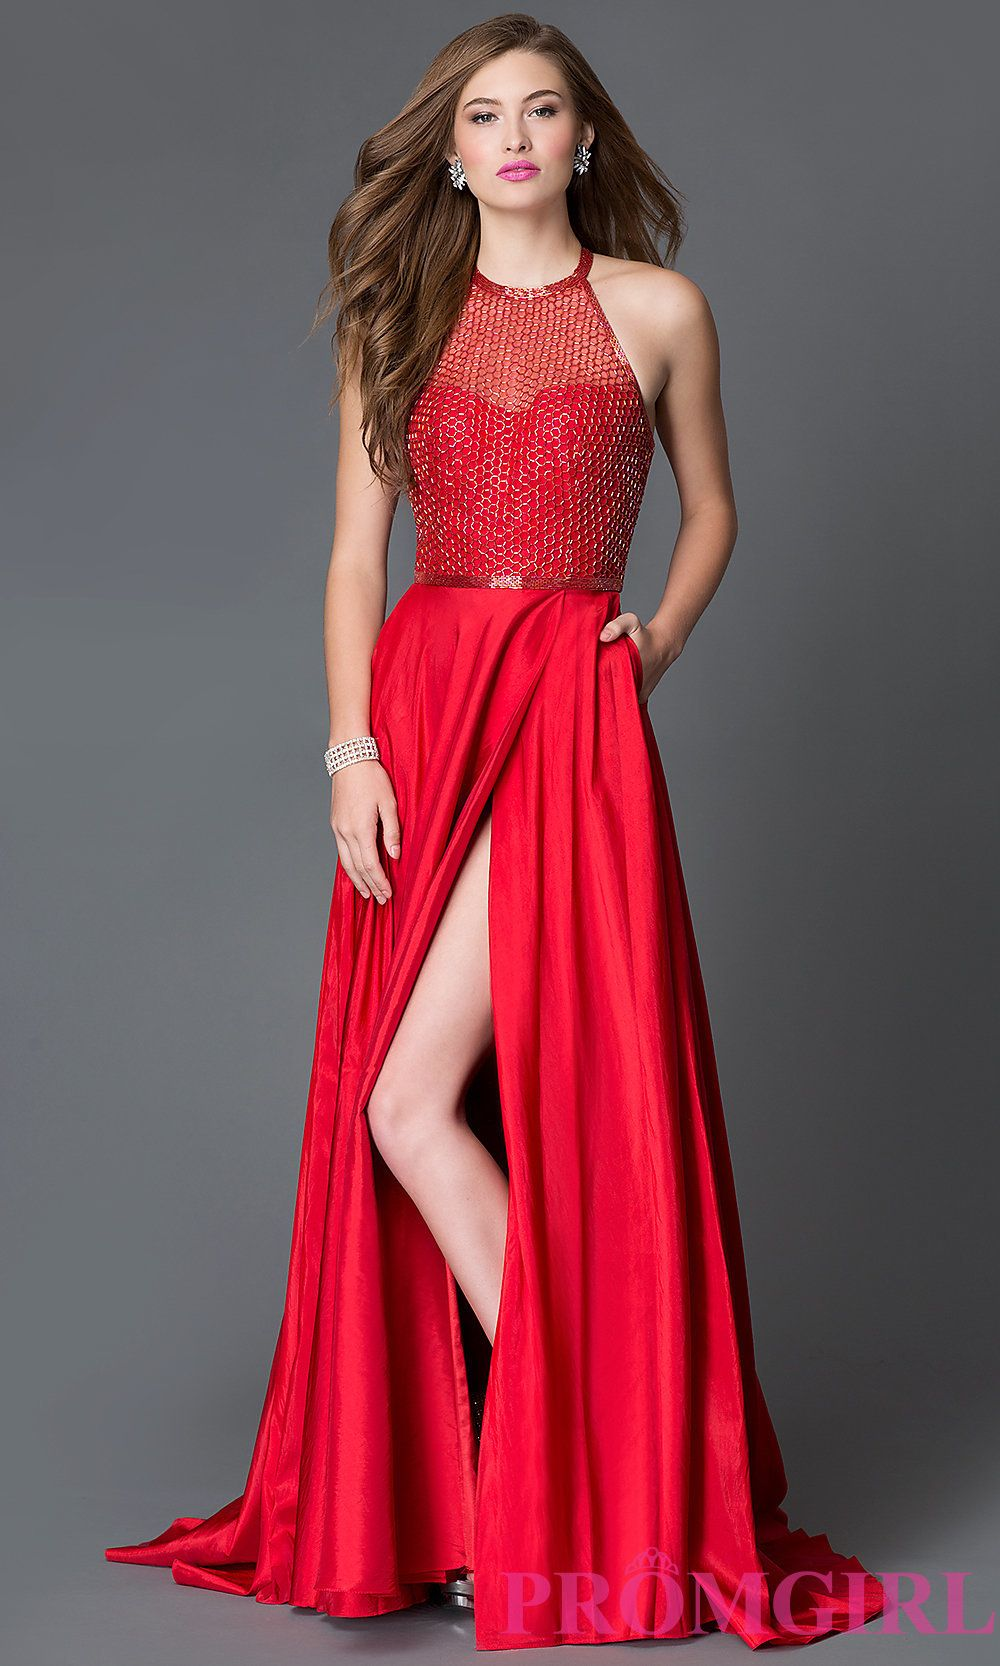 Long Sherri Hill Prom Dress with Multi-Strap Back -PromGirl | PROM ...